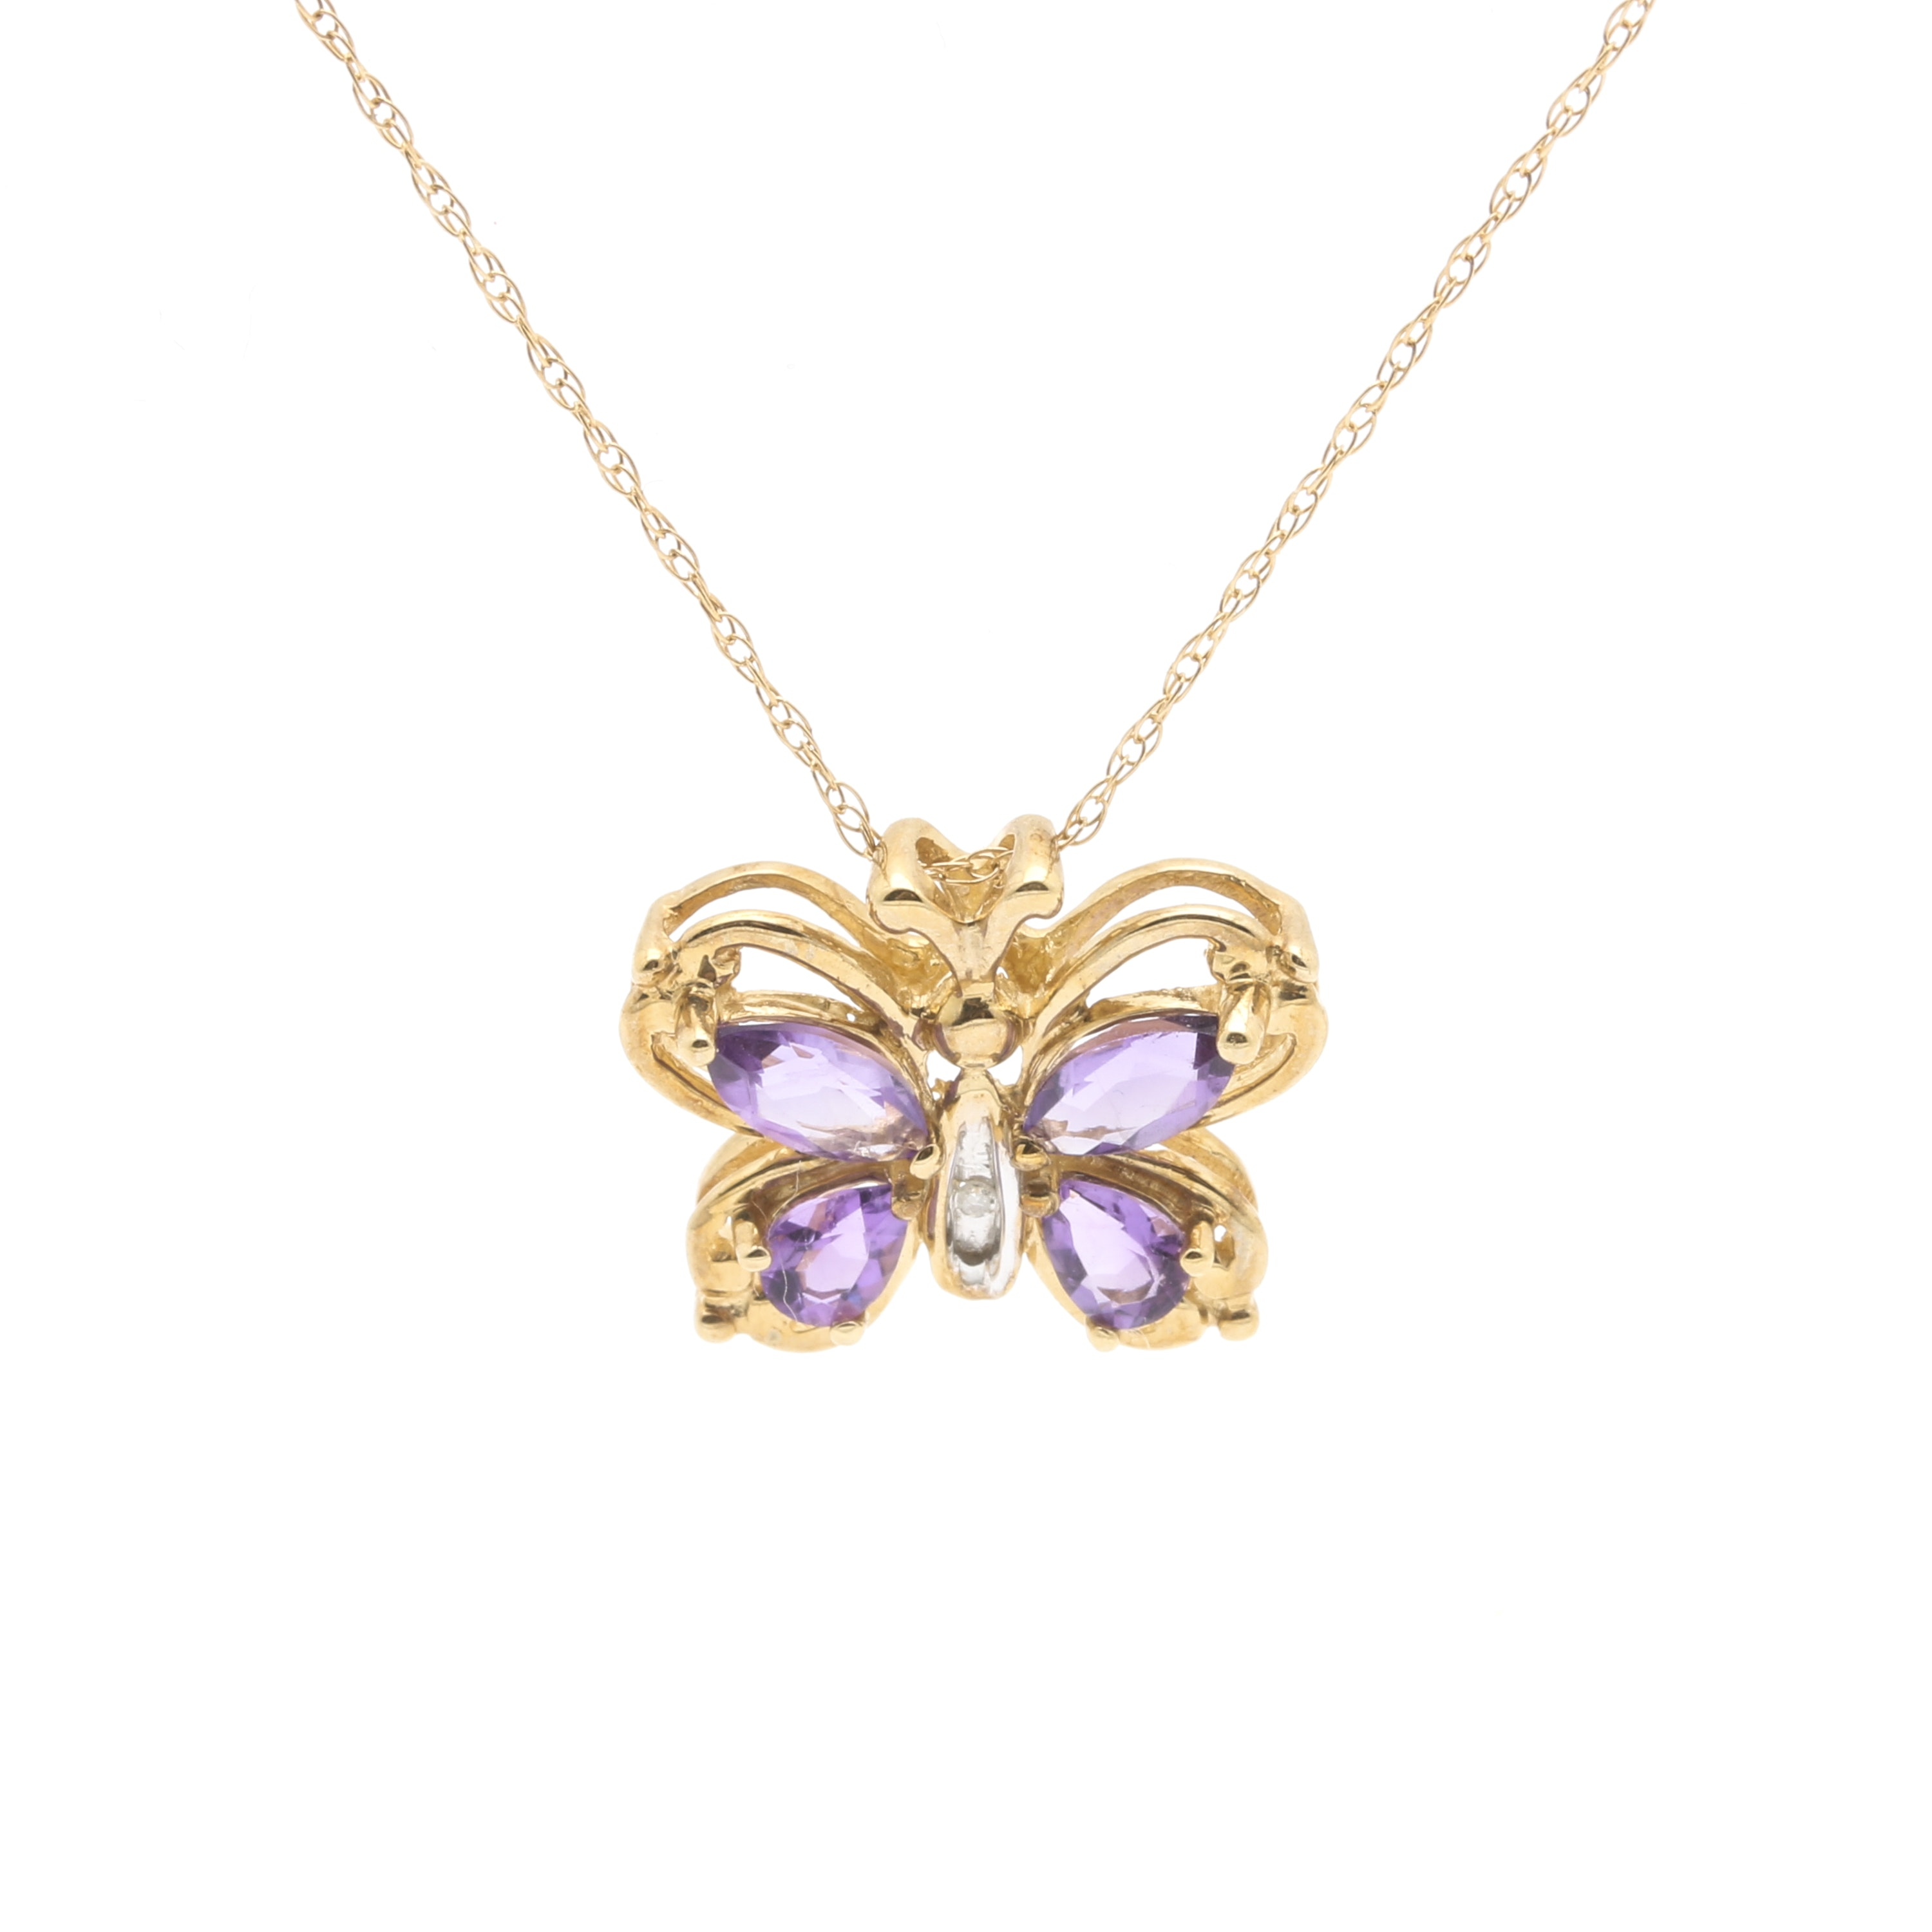 Alwand Vahan 10K Yellow Gold Amethyst and Diamond Butterfly Pendant Necklace